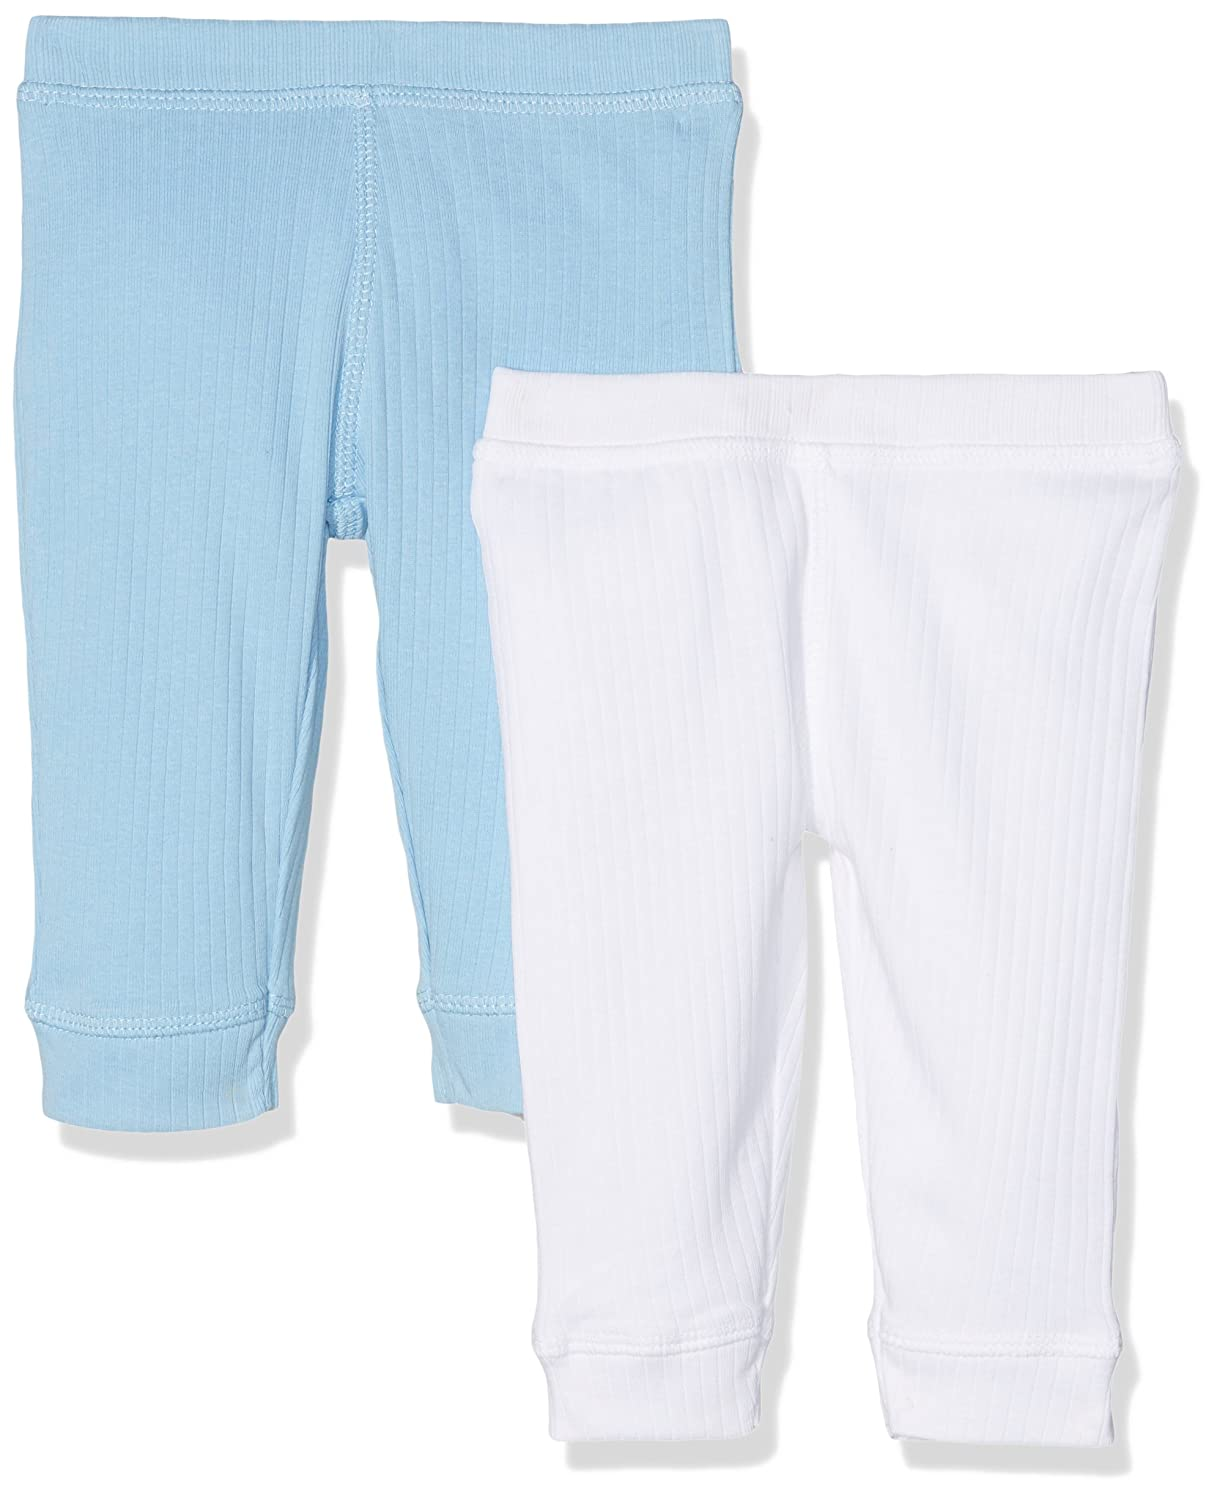 Care Baby Boys' Trousers, Organic Cotton (Pack of 2) Care Baby Boys' Trousers Brands 4 Kids A/S 550068